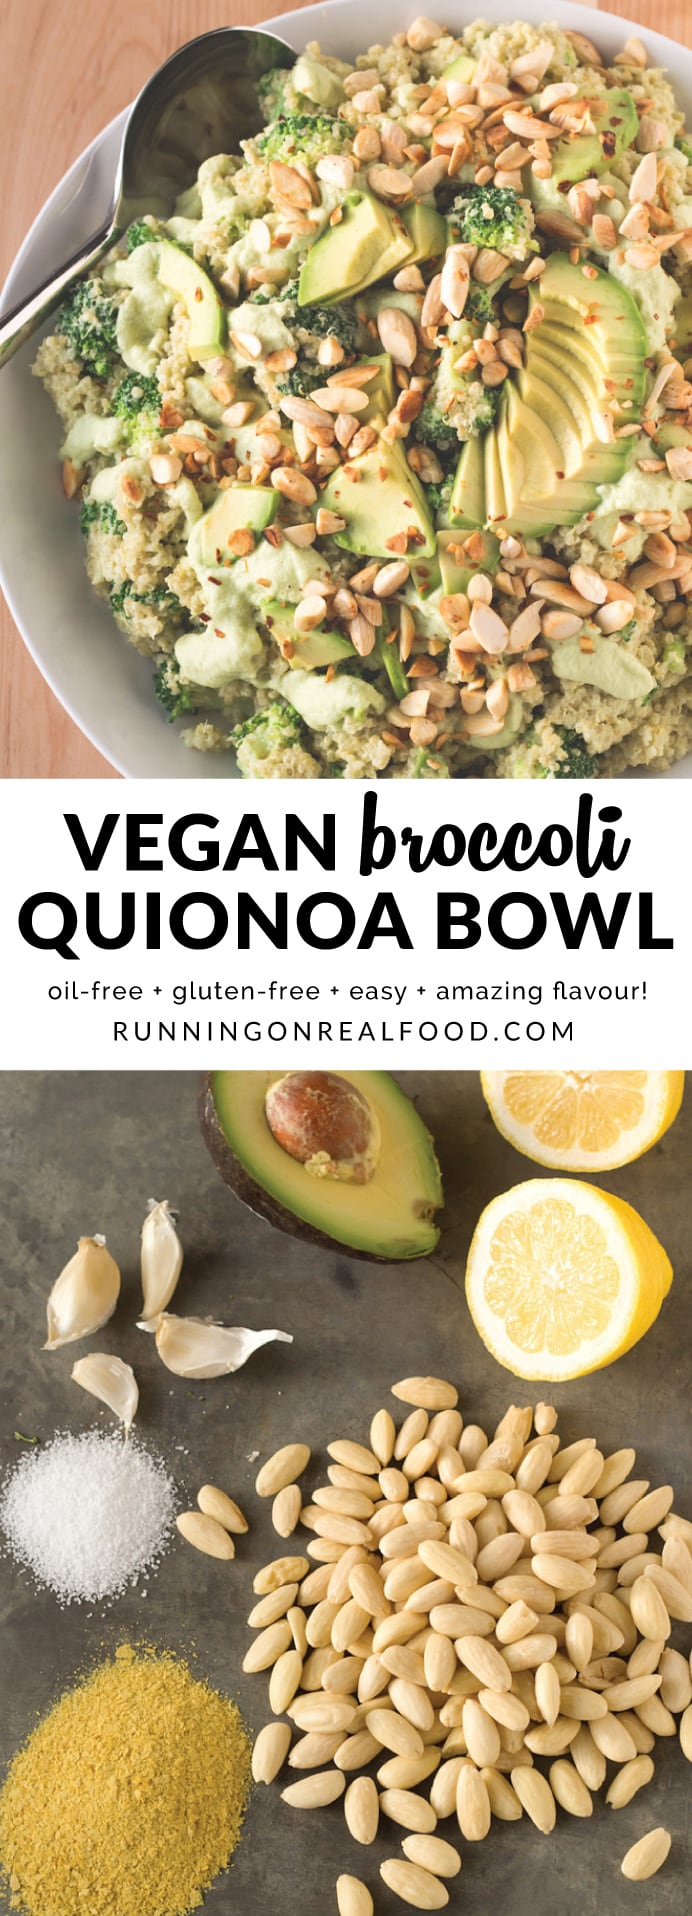 This easy recipe is packed with healthy, delicious ingredients like avocado, broccoli, almonds and nutritional yeast. The sauce is made with the broccoli stalks making it packed with nutrition and reducing any food waste. It's vegan, oil-free and gluten-free. Super easy to make, loaded with flavour.